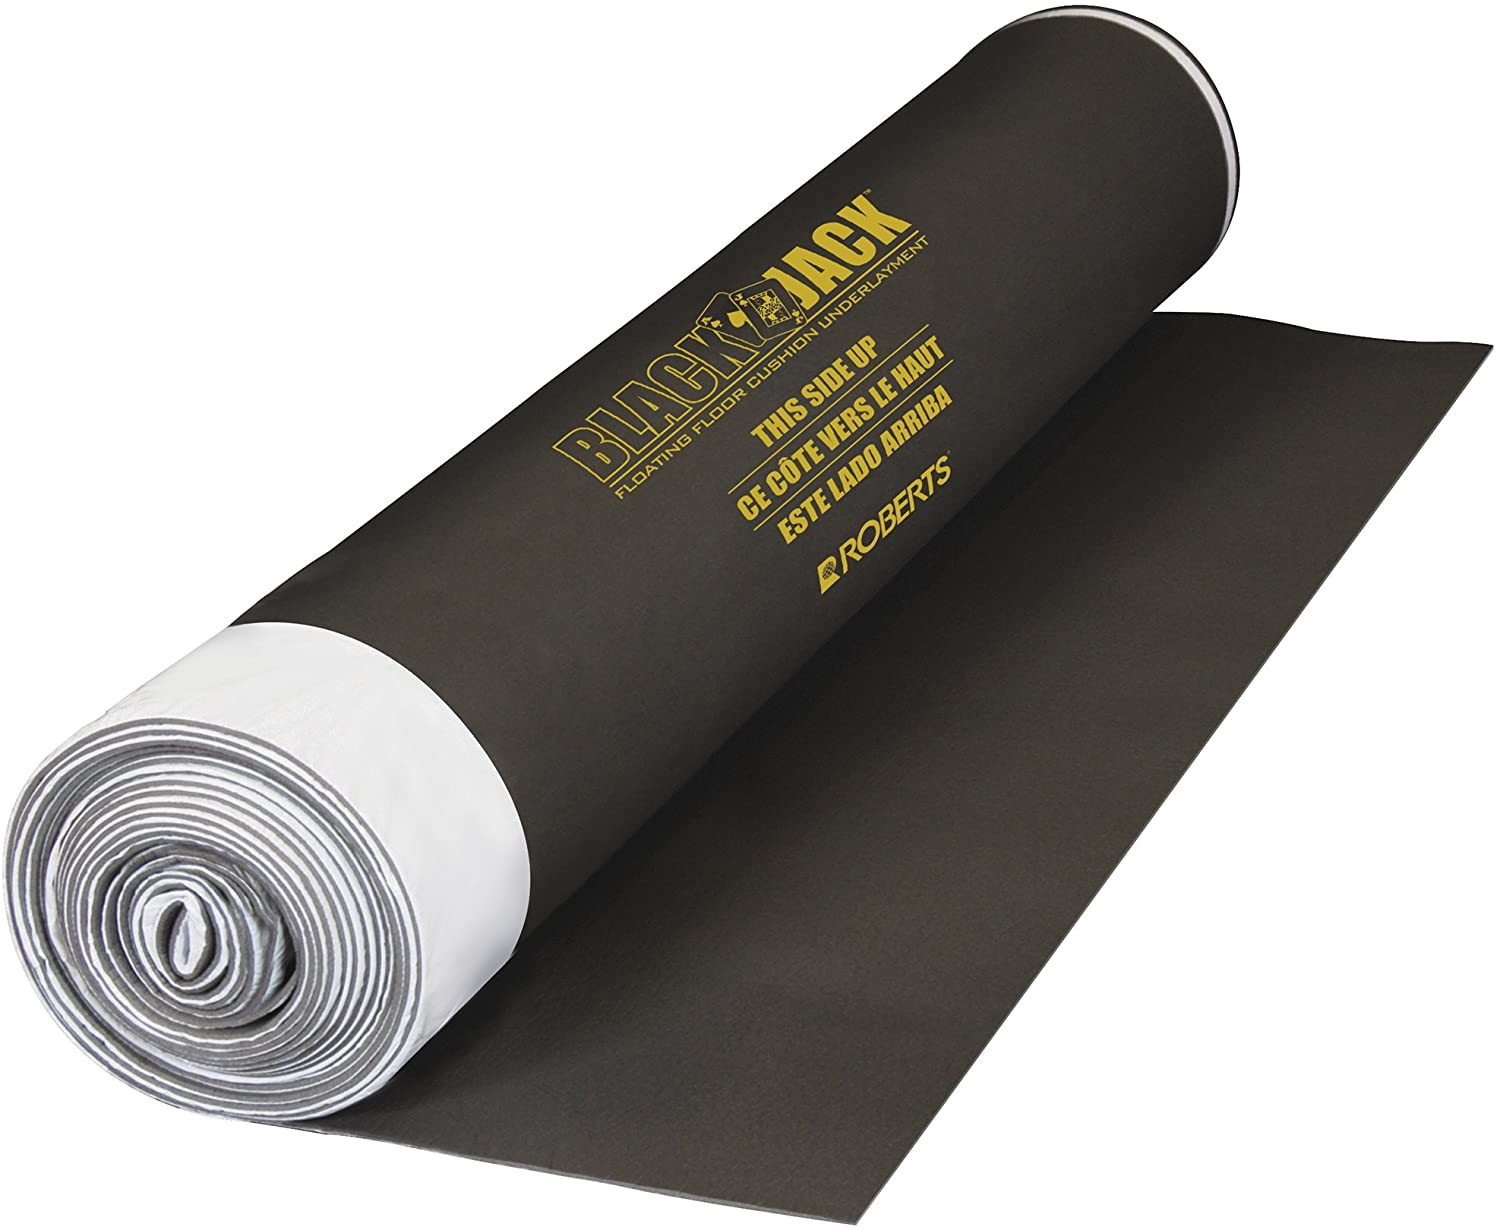 Black Jack 100 sq. Roll of 2-in-1 (3 Pack)